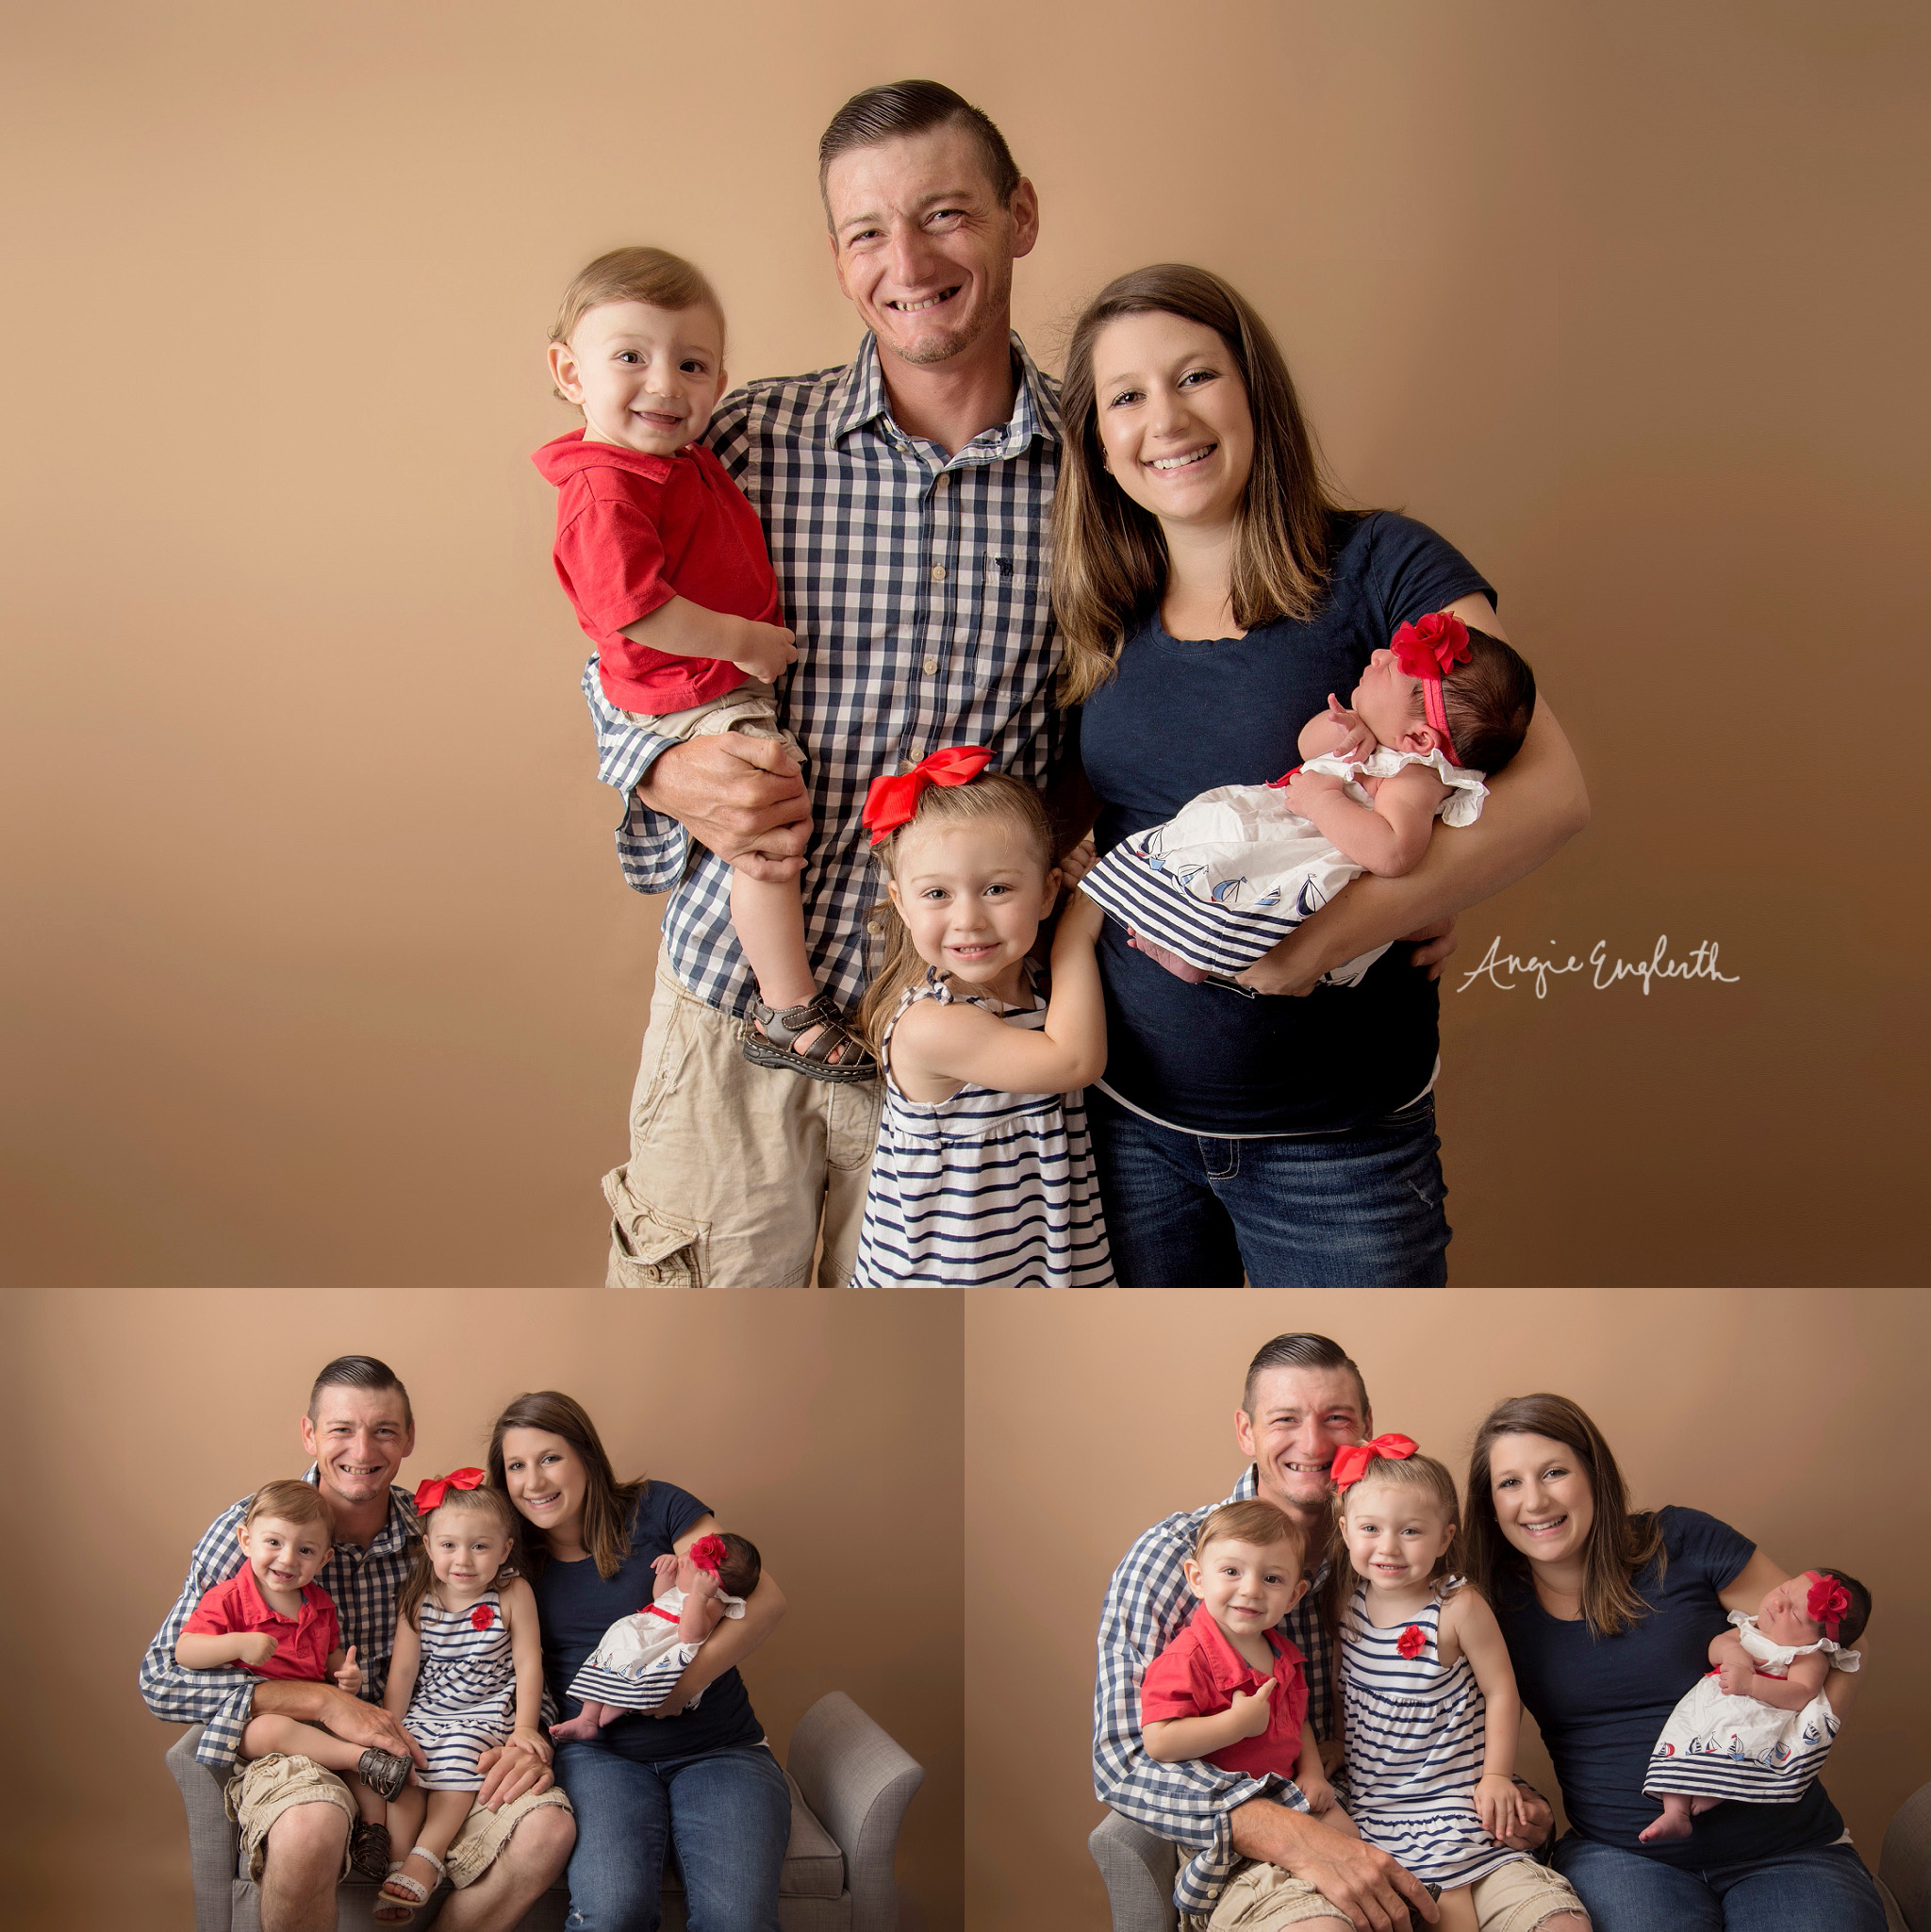 lancaster_newborn_and_maternity_photographer_angie_englerth_central_pa_b048.jpg